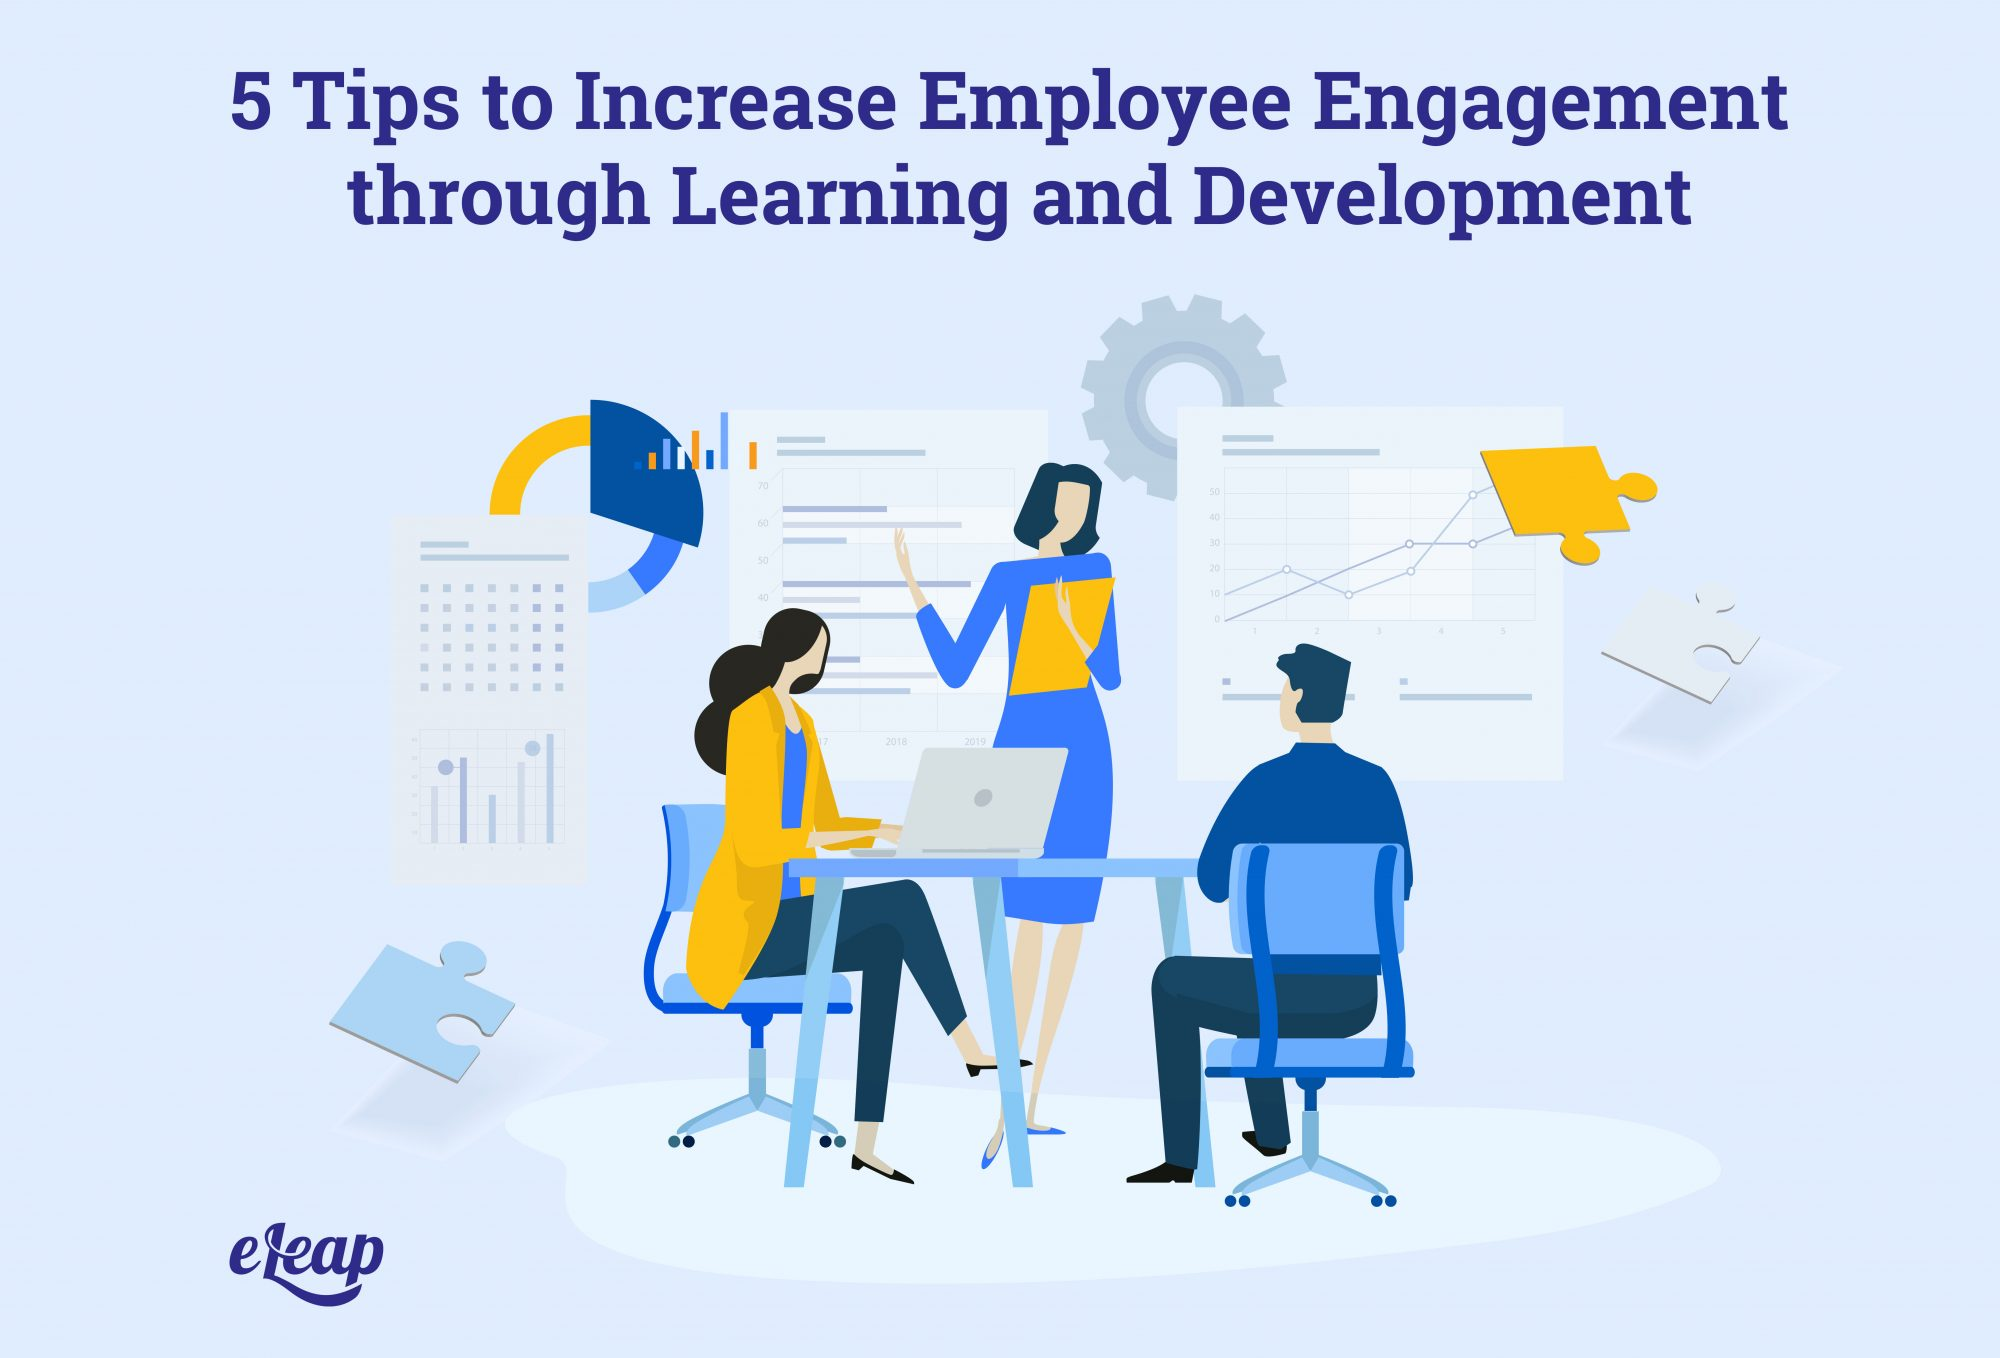 5 Tips to Increase Employee Engagement through Learning and Development